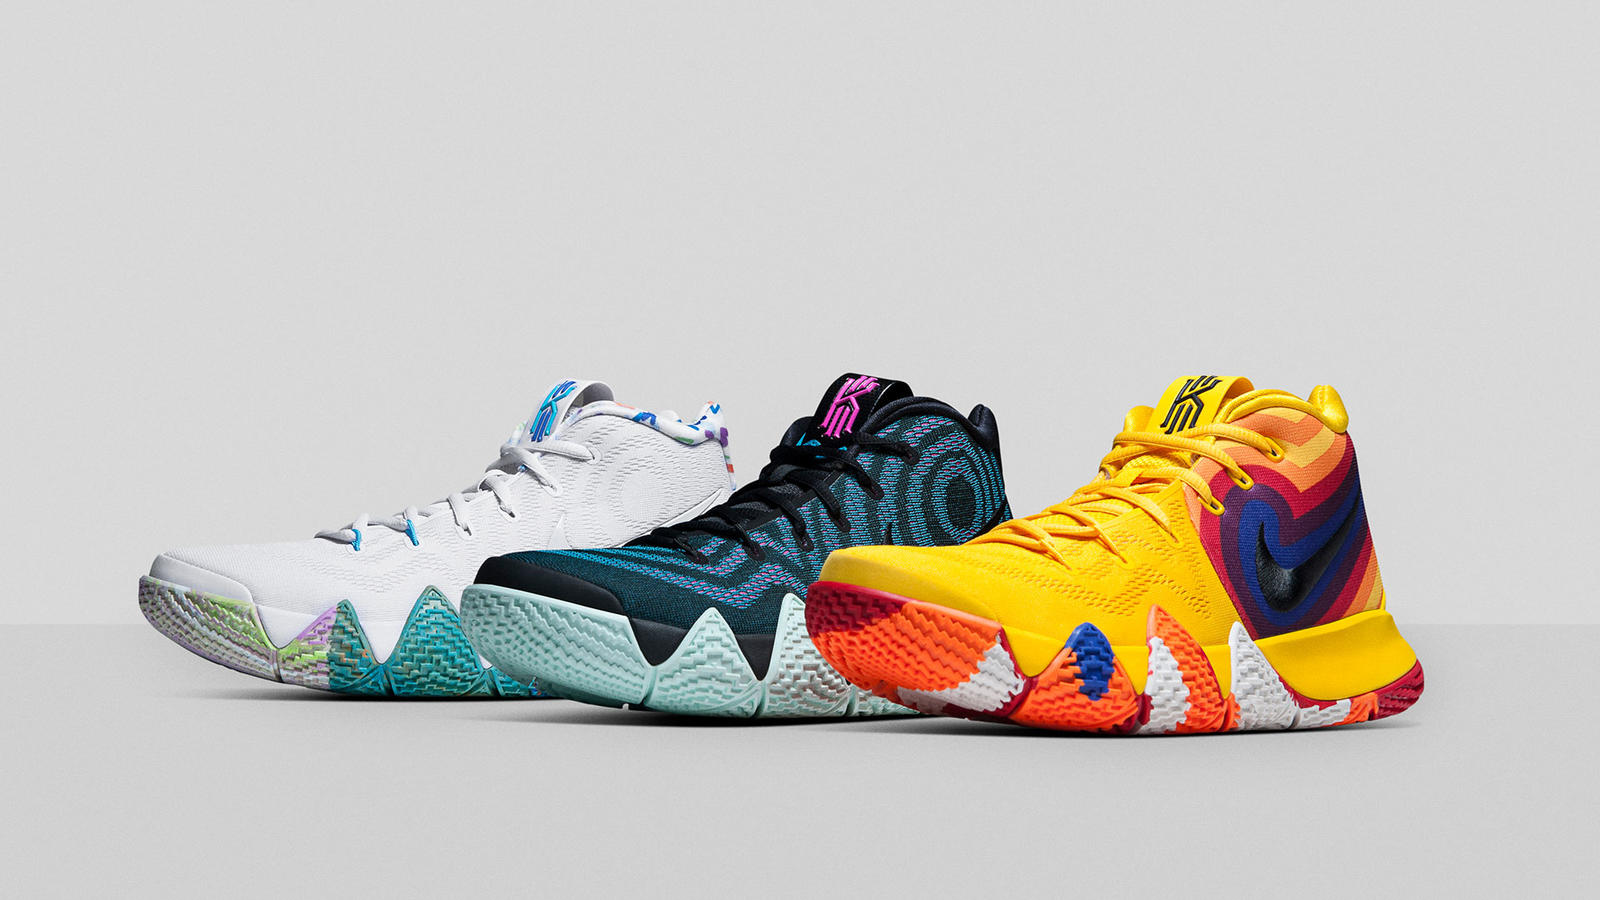 quality design 3a41f 10439 KYRIE 4 Decades Pack - Nike News